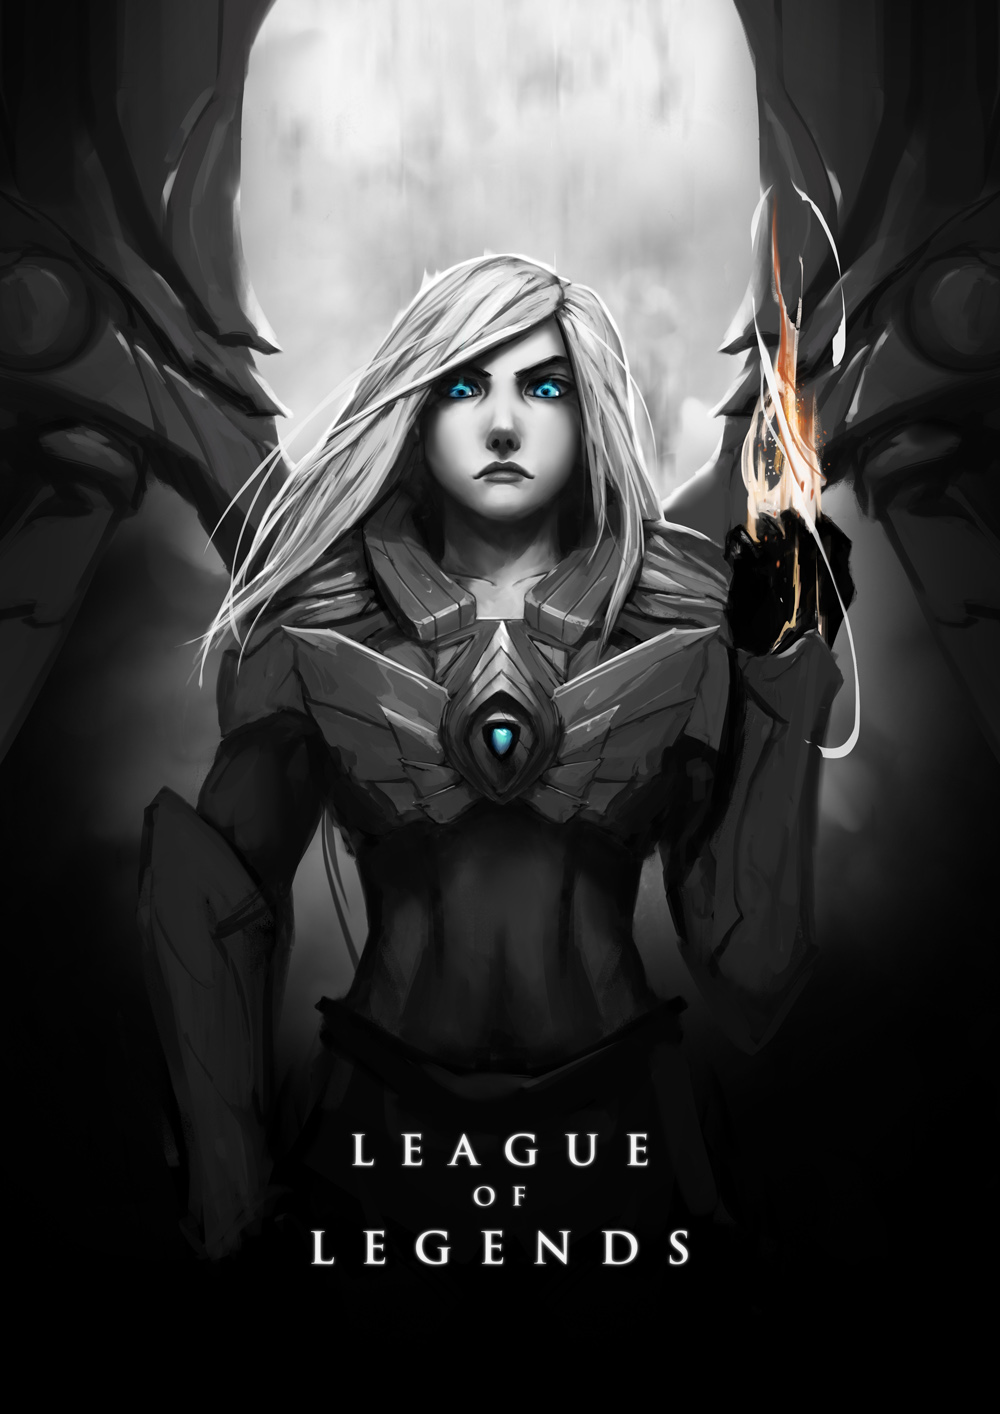 Kayle By Wacalac Hd Wallpaper Fan Art Artwork League Fan Art Jax